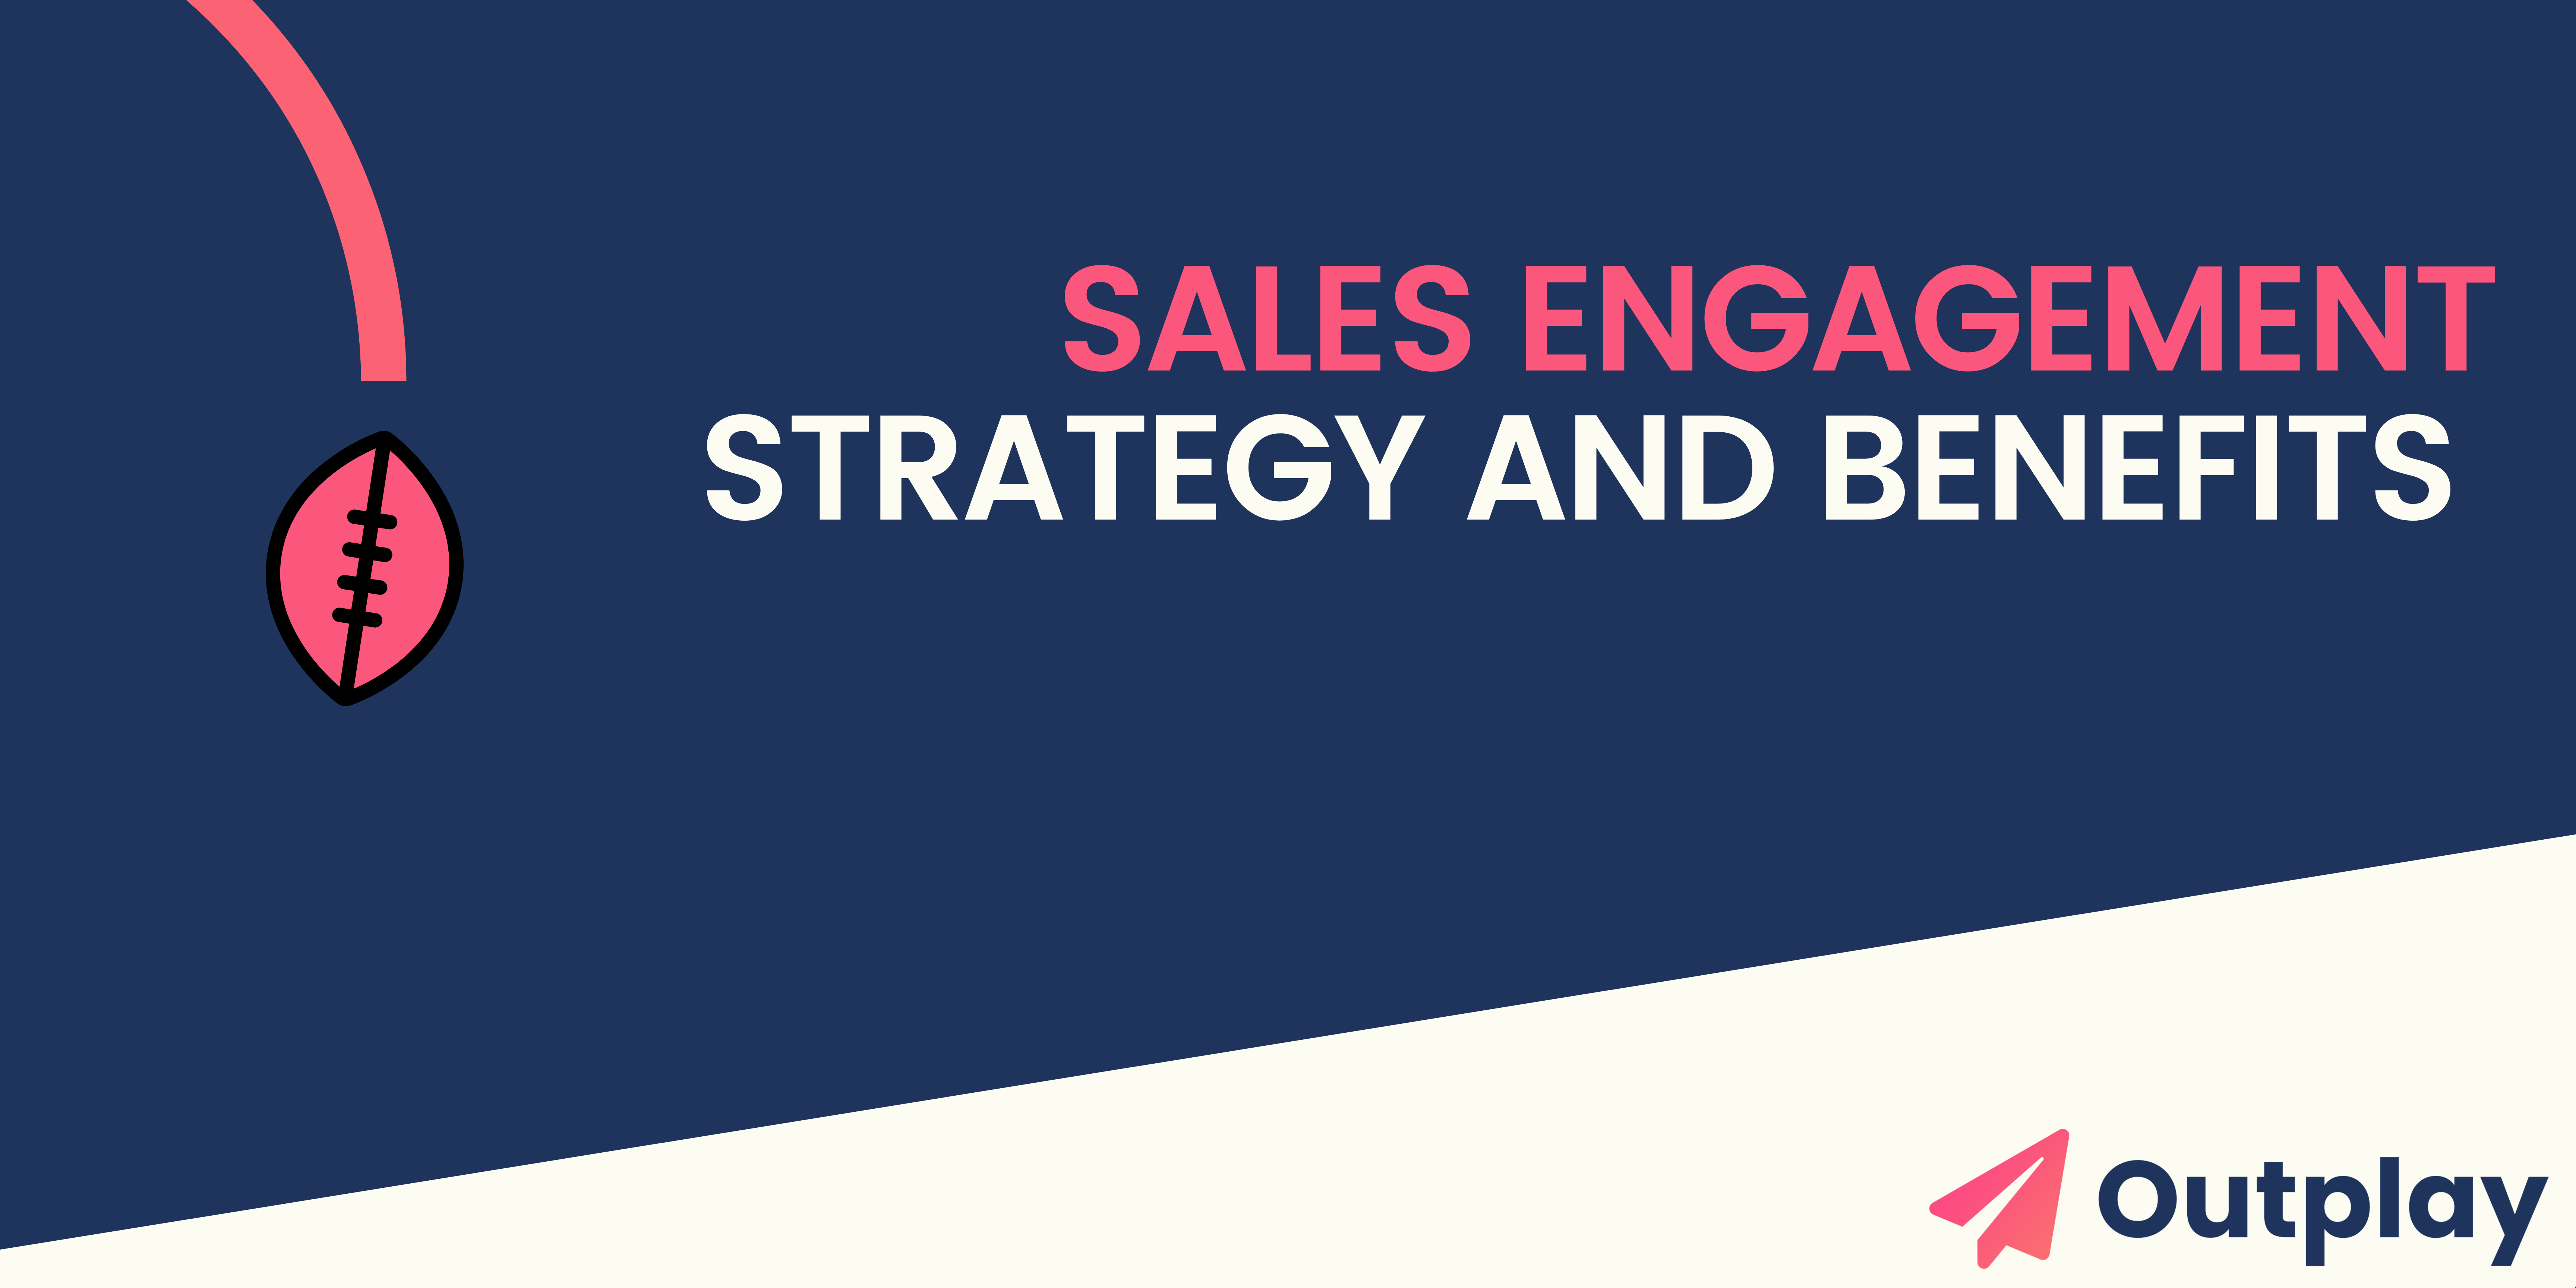 Sales engagement strategy